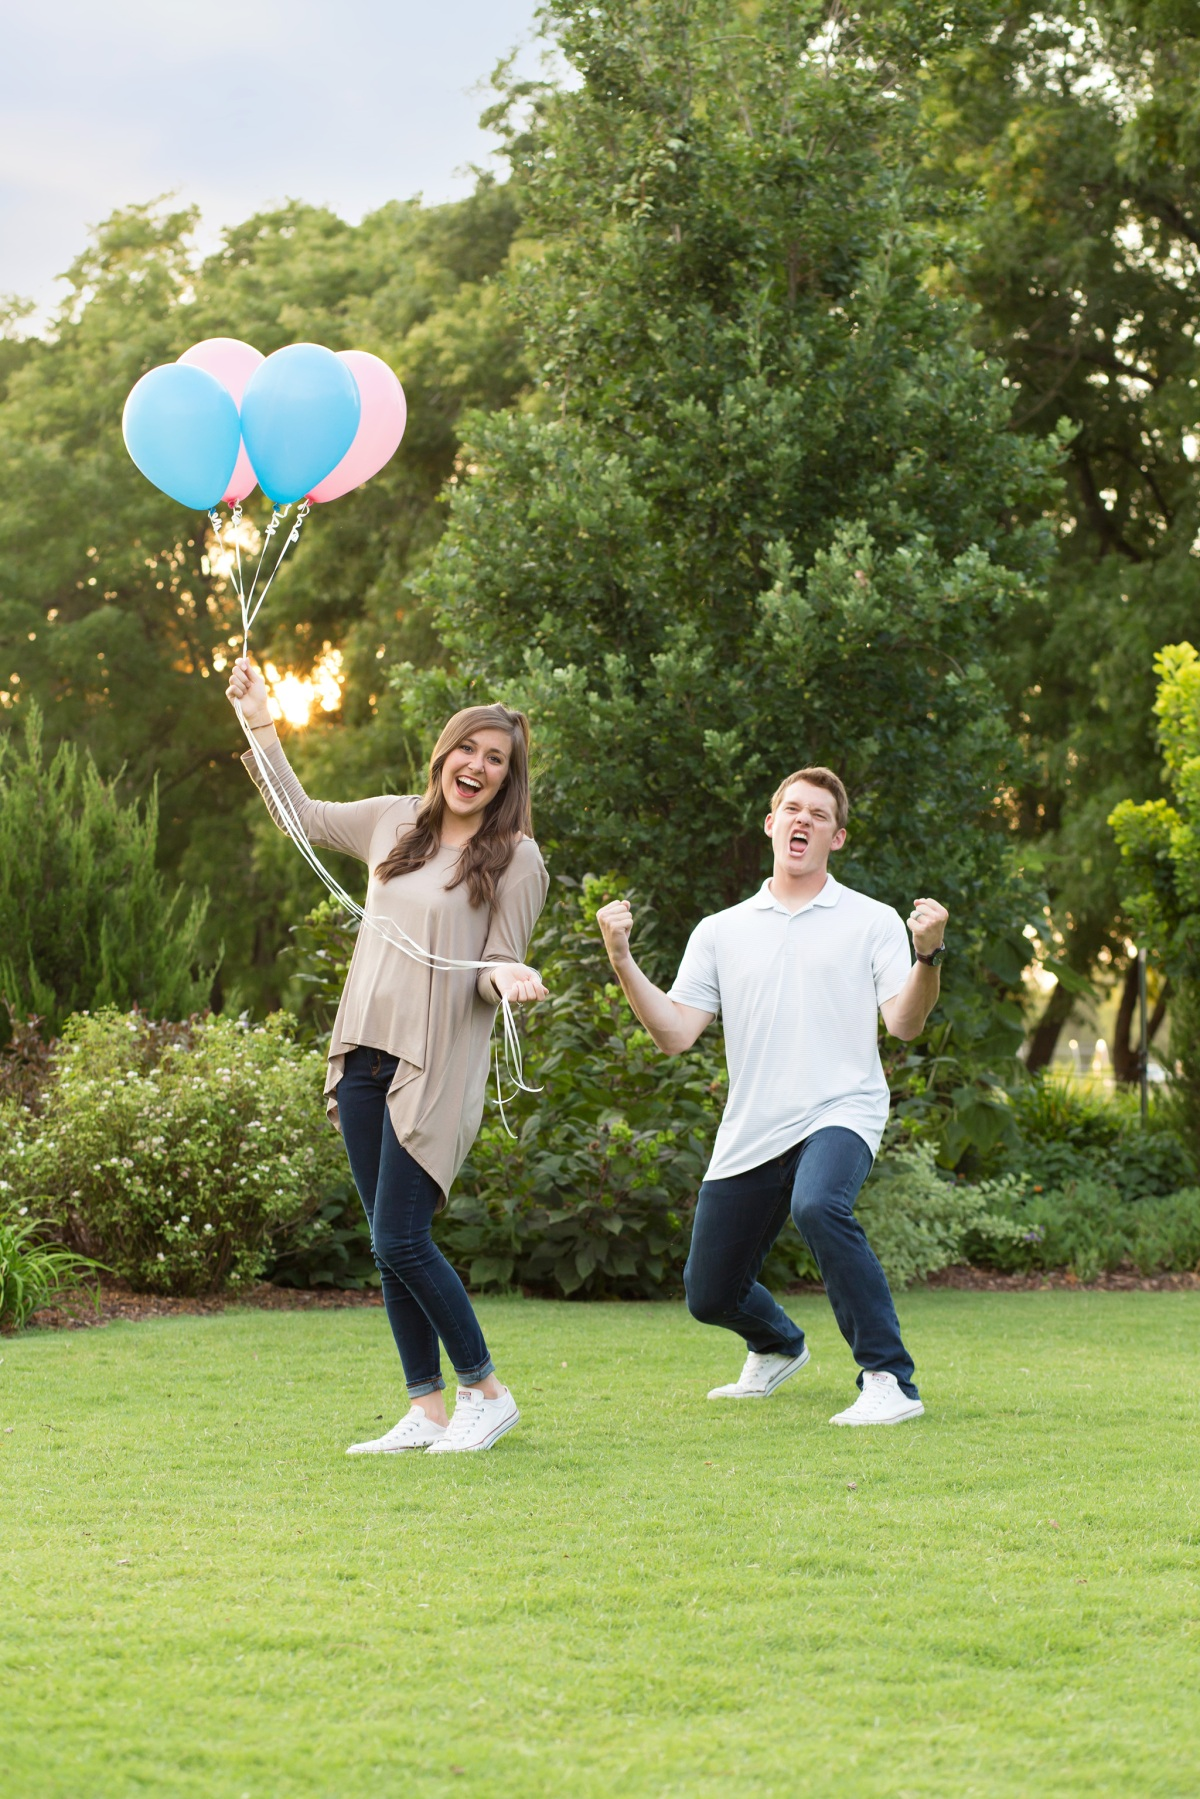 Couple holding balloons at Baby Announcement Photoshoot in Stillwater, Oklahoma July 2016